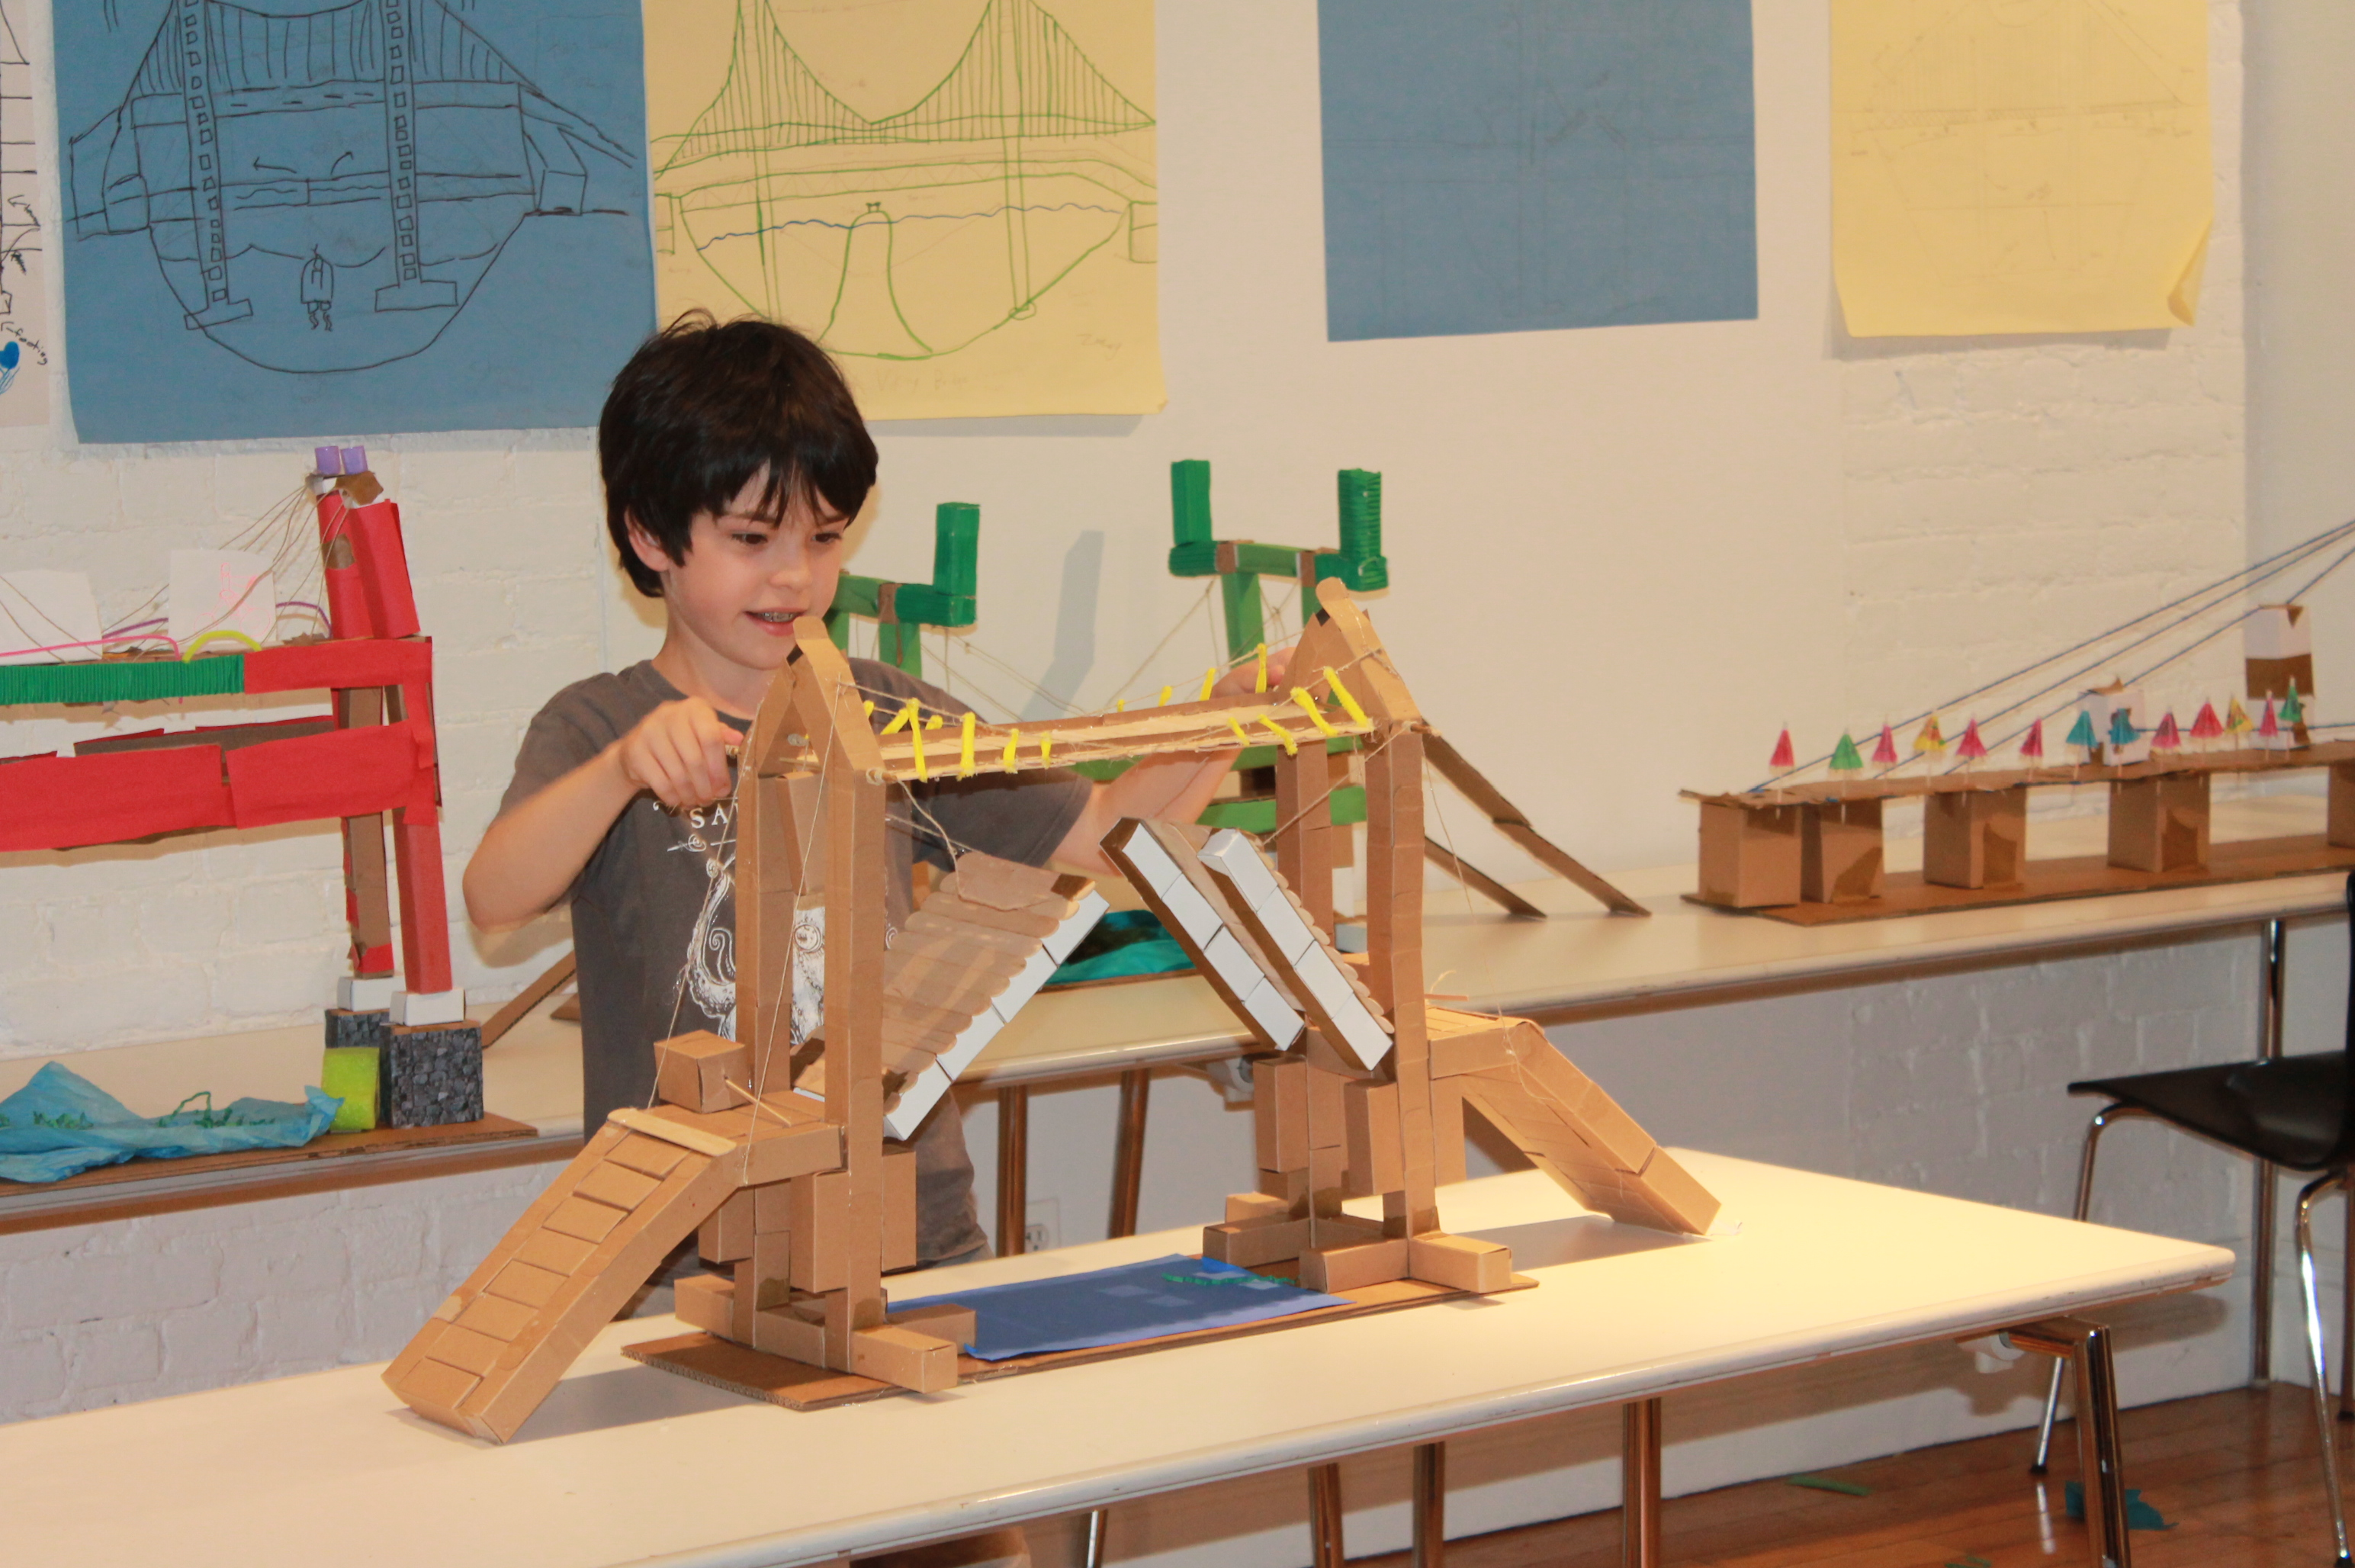 Architecture at Home: Moving Bridges at Center for Architecture